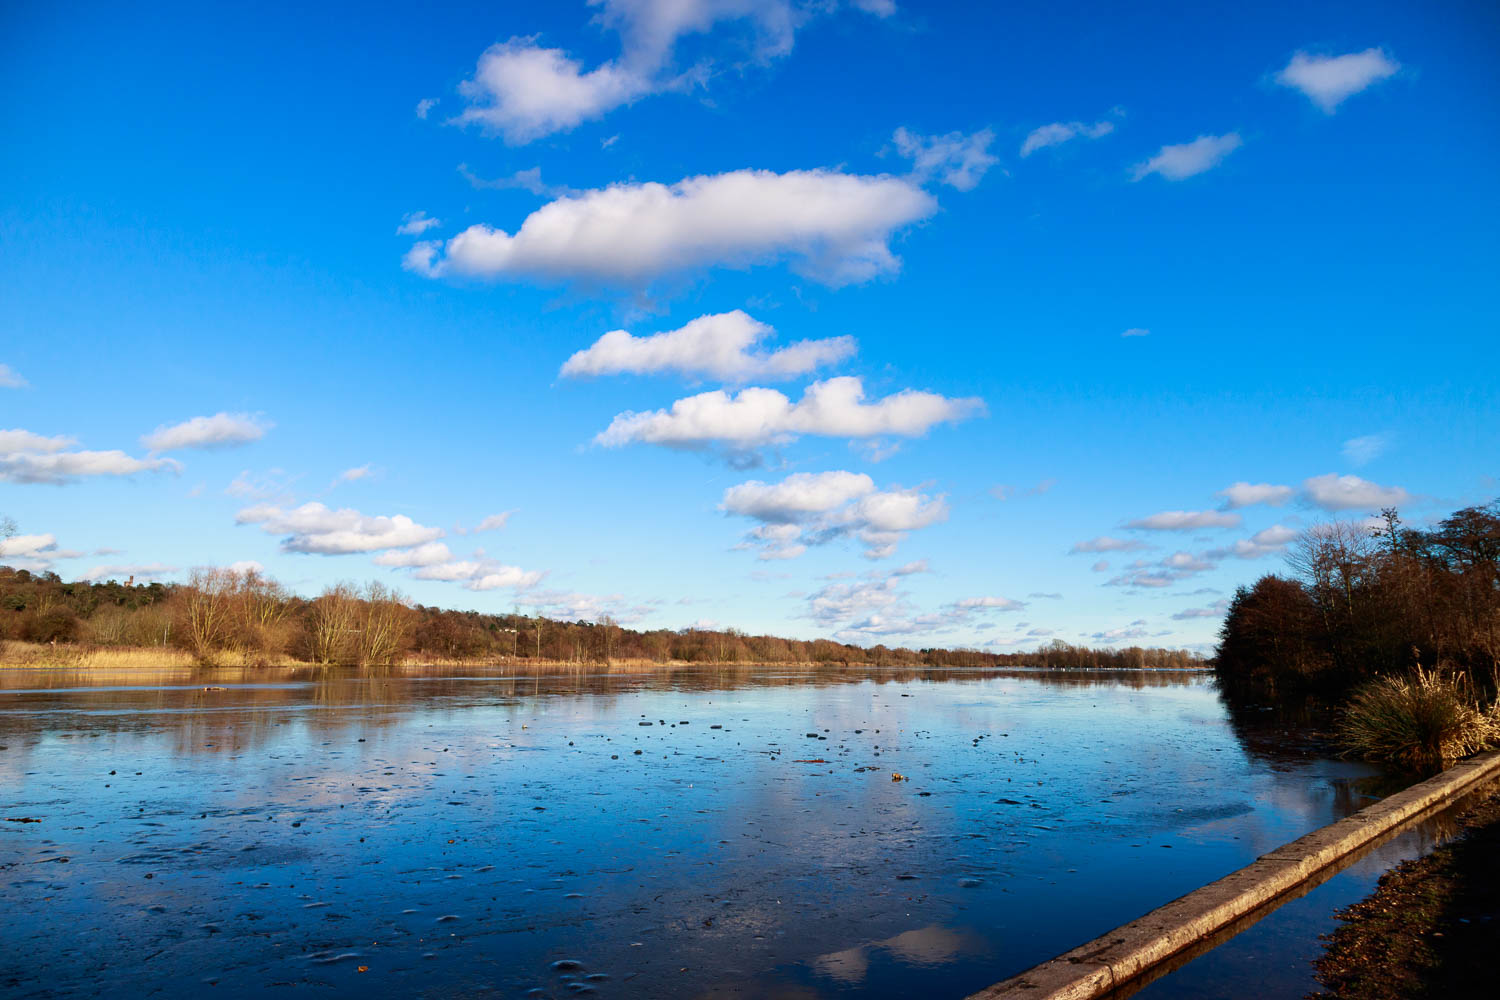 A mostly frozen Whitlingham Broad under a bright sky.